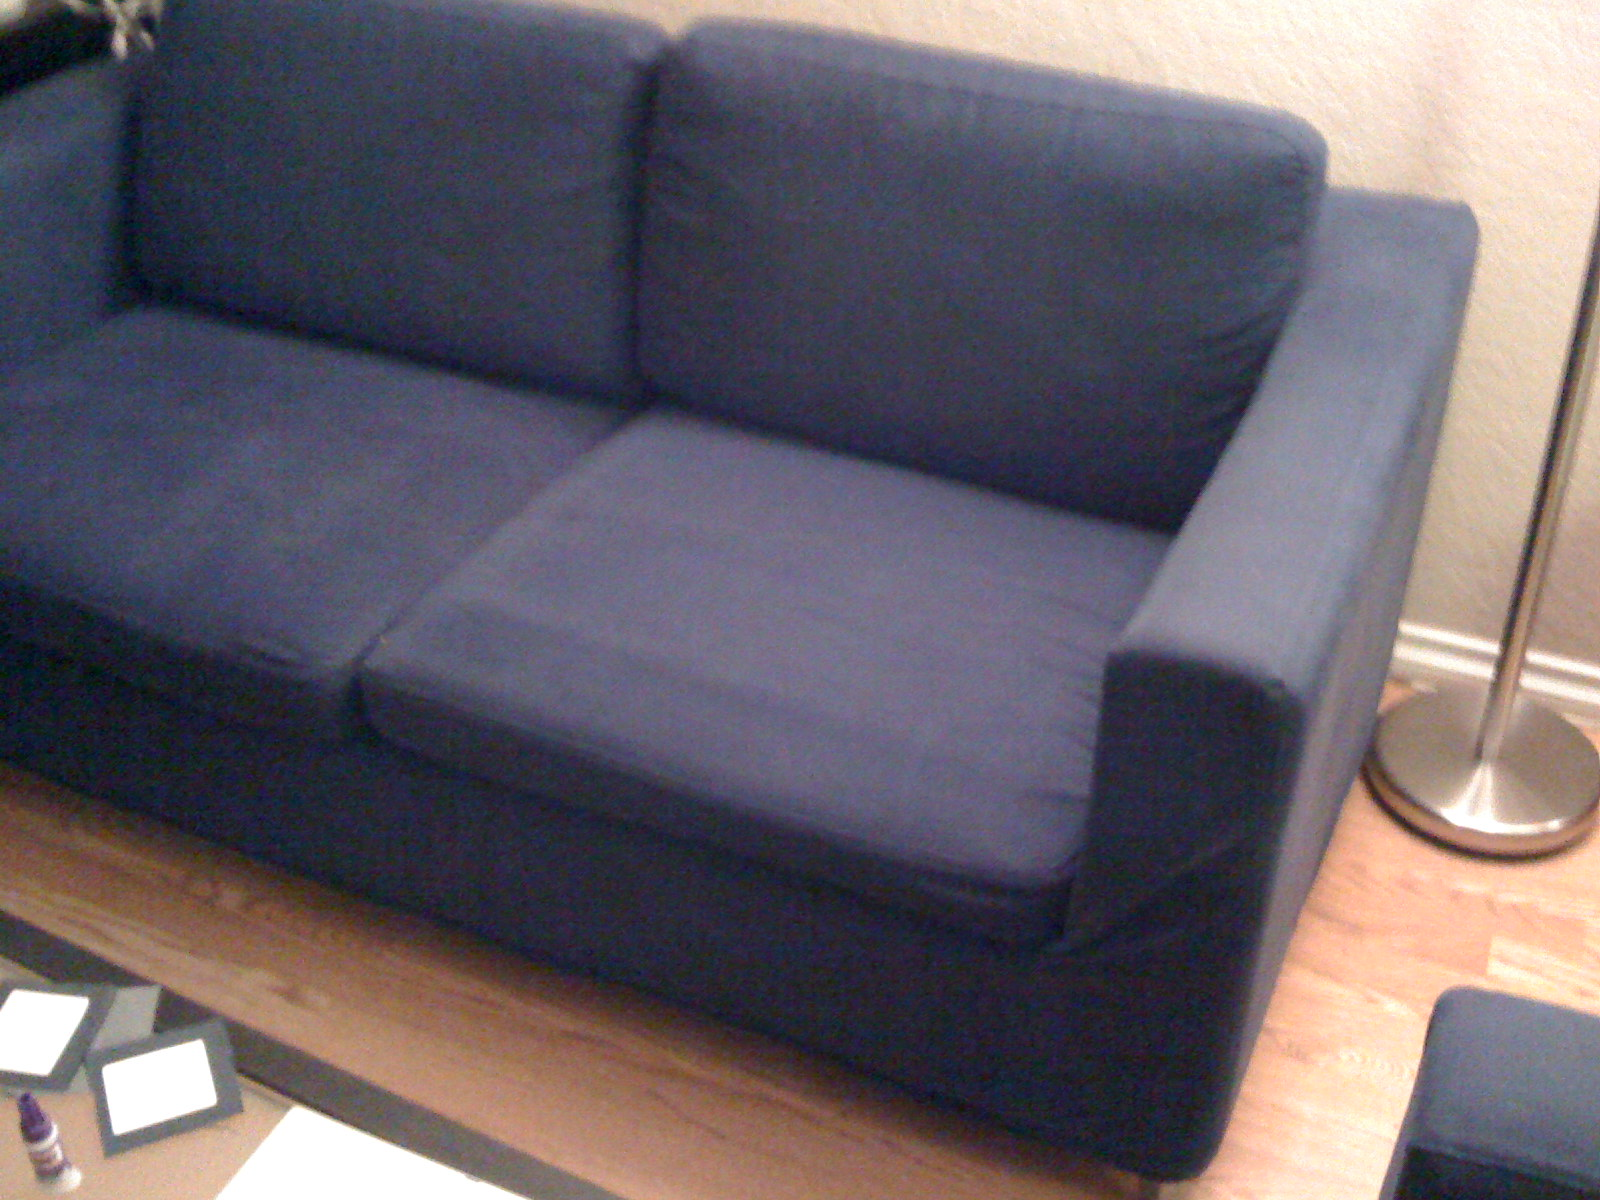 Discontinued Ikea Sofas Part 44 Replacement IKEA Sofa Covers